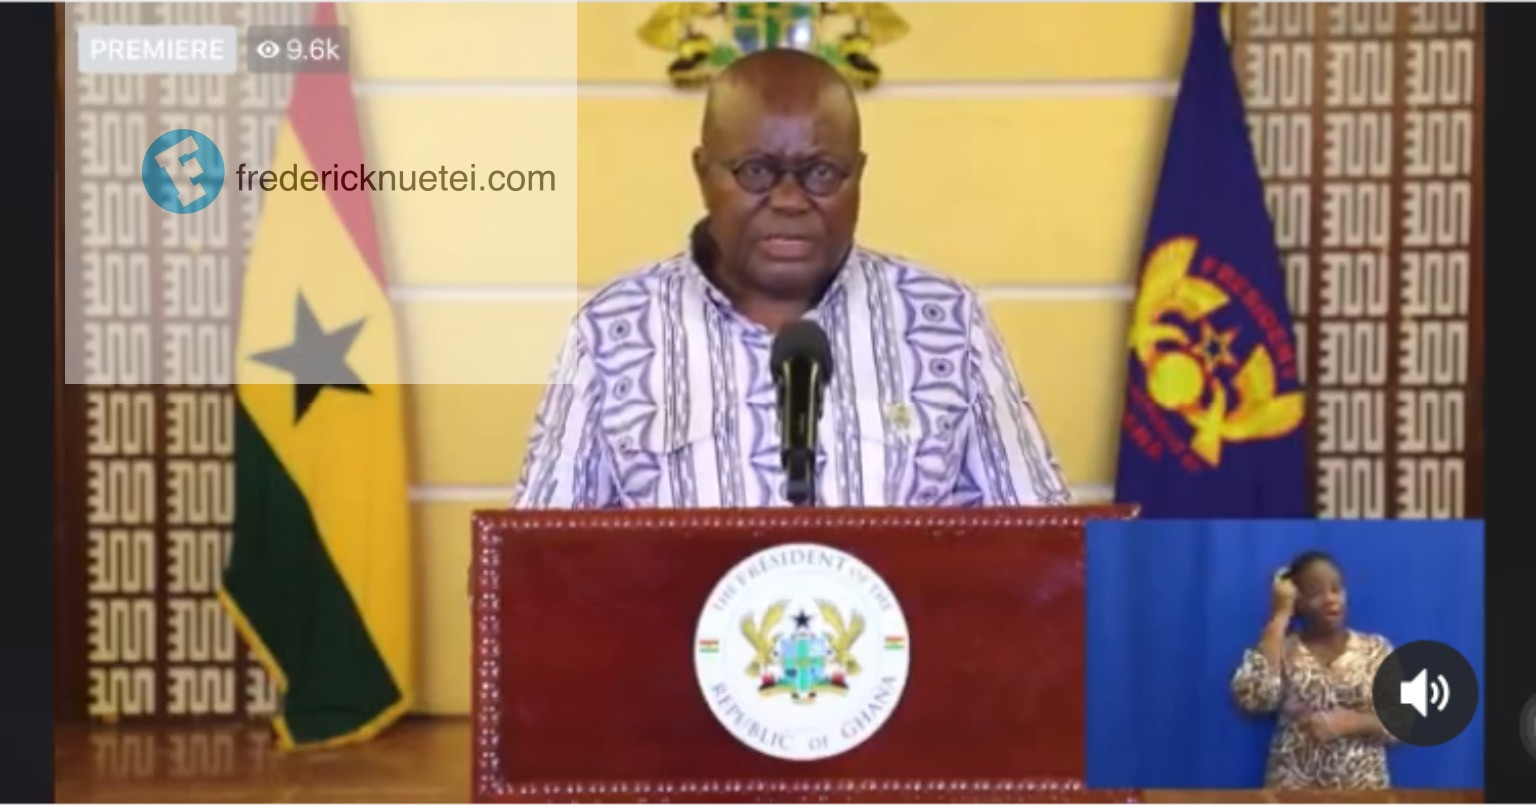 Borders Remain Closed Till Further Notice But Restrictions On The Number Of Passengers In Airplanes And Cars Lifted - President Nana Akufo-Addo